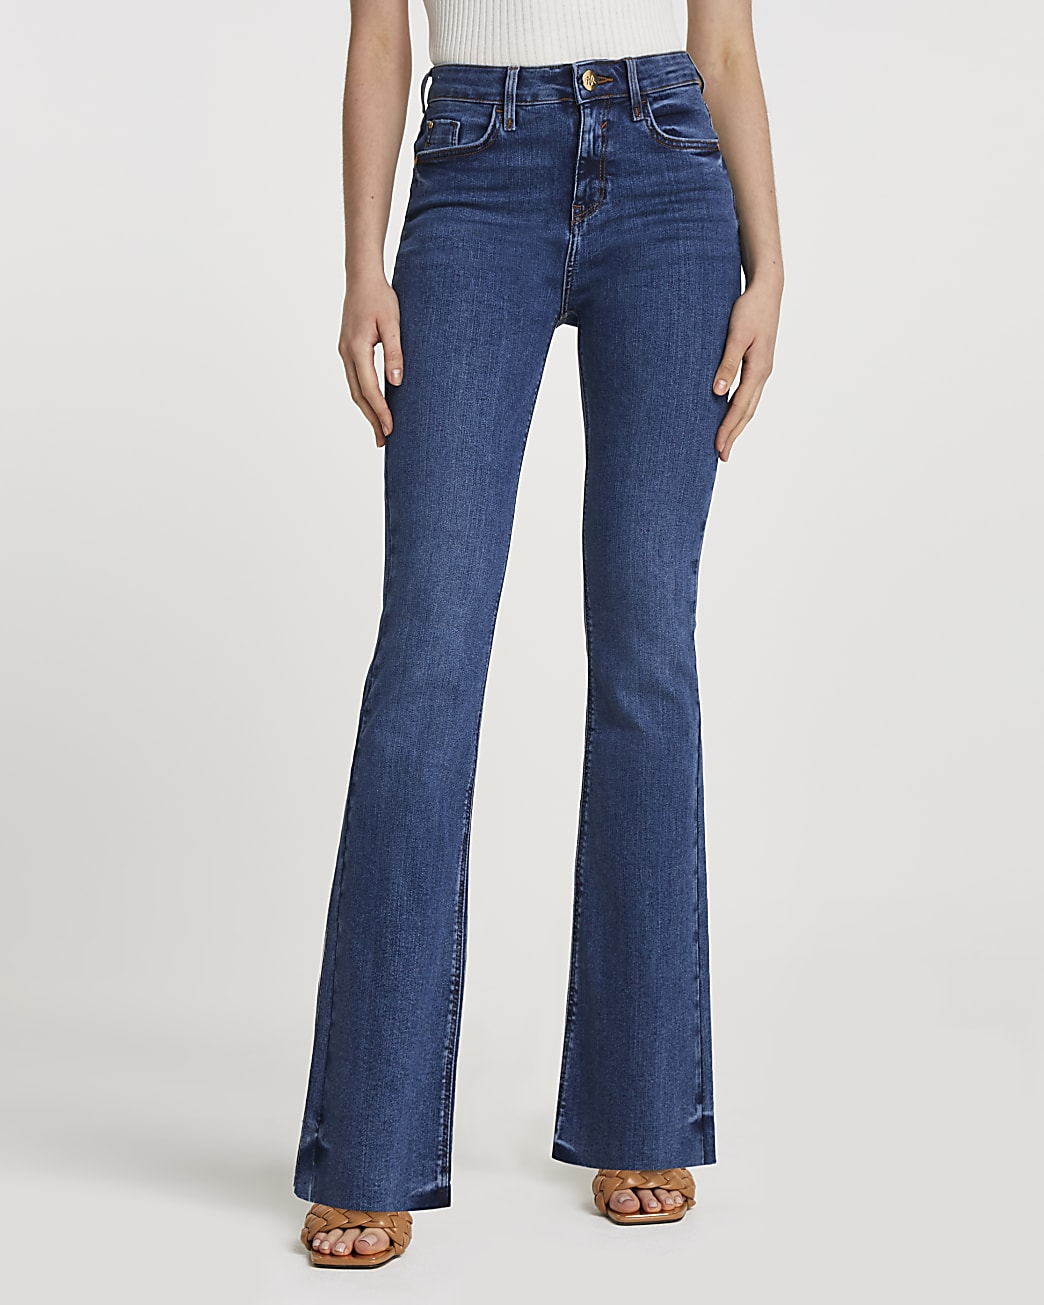 Blue mid rise flared jeans